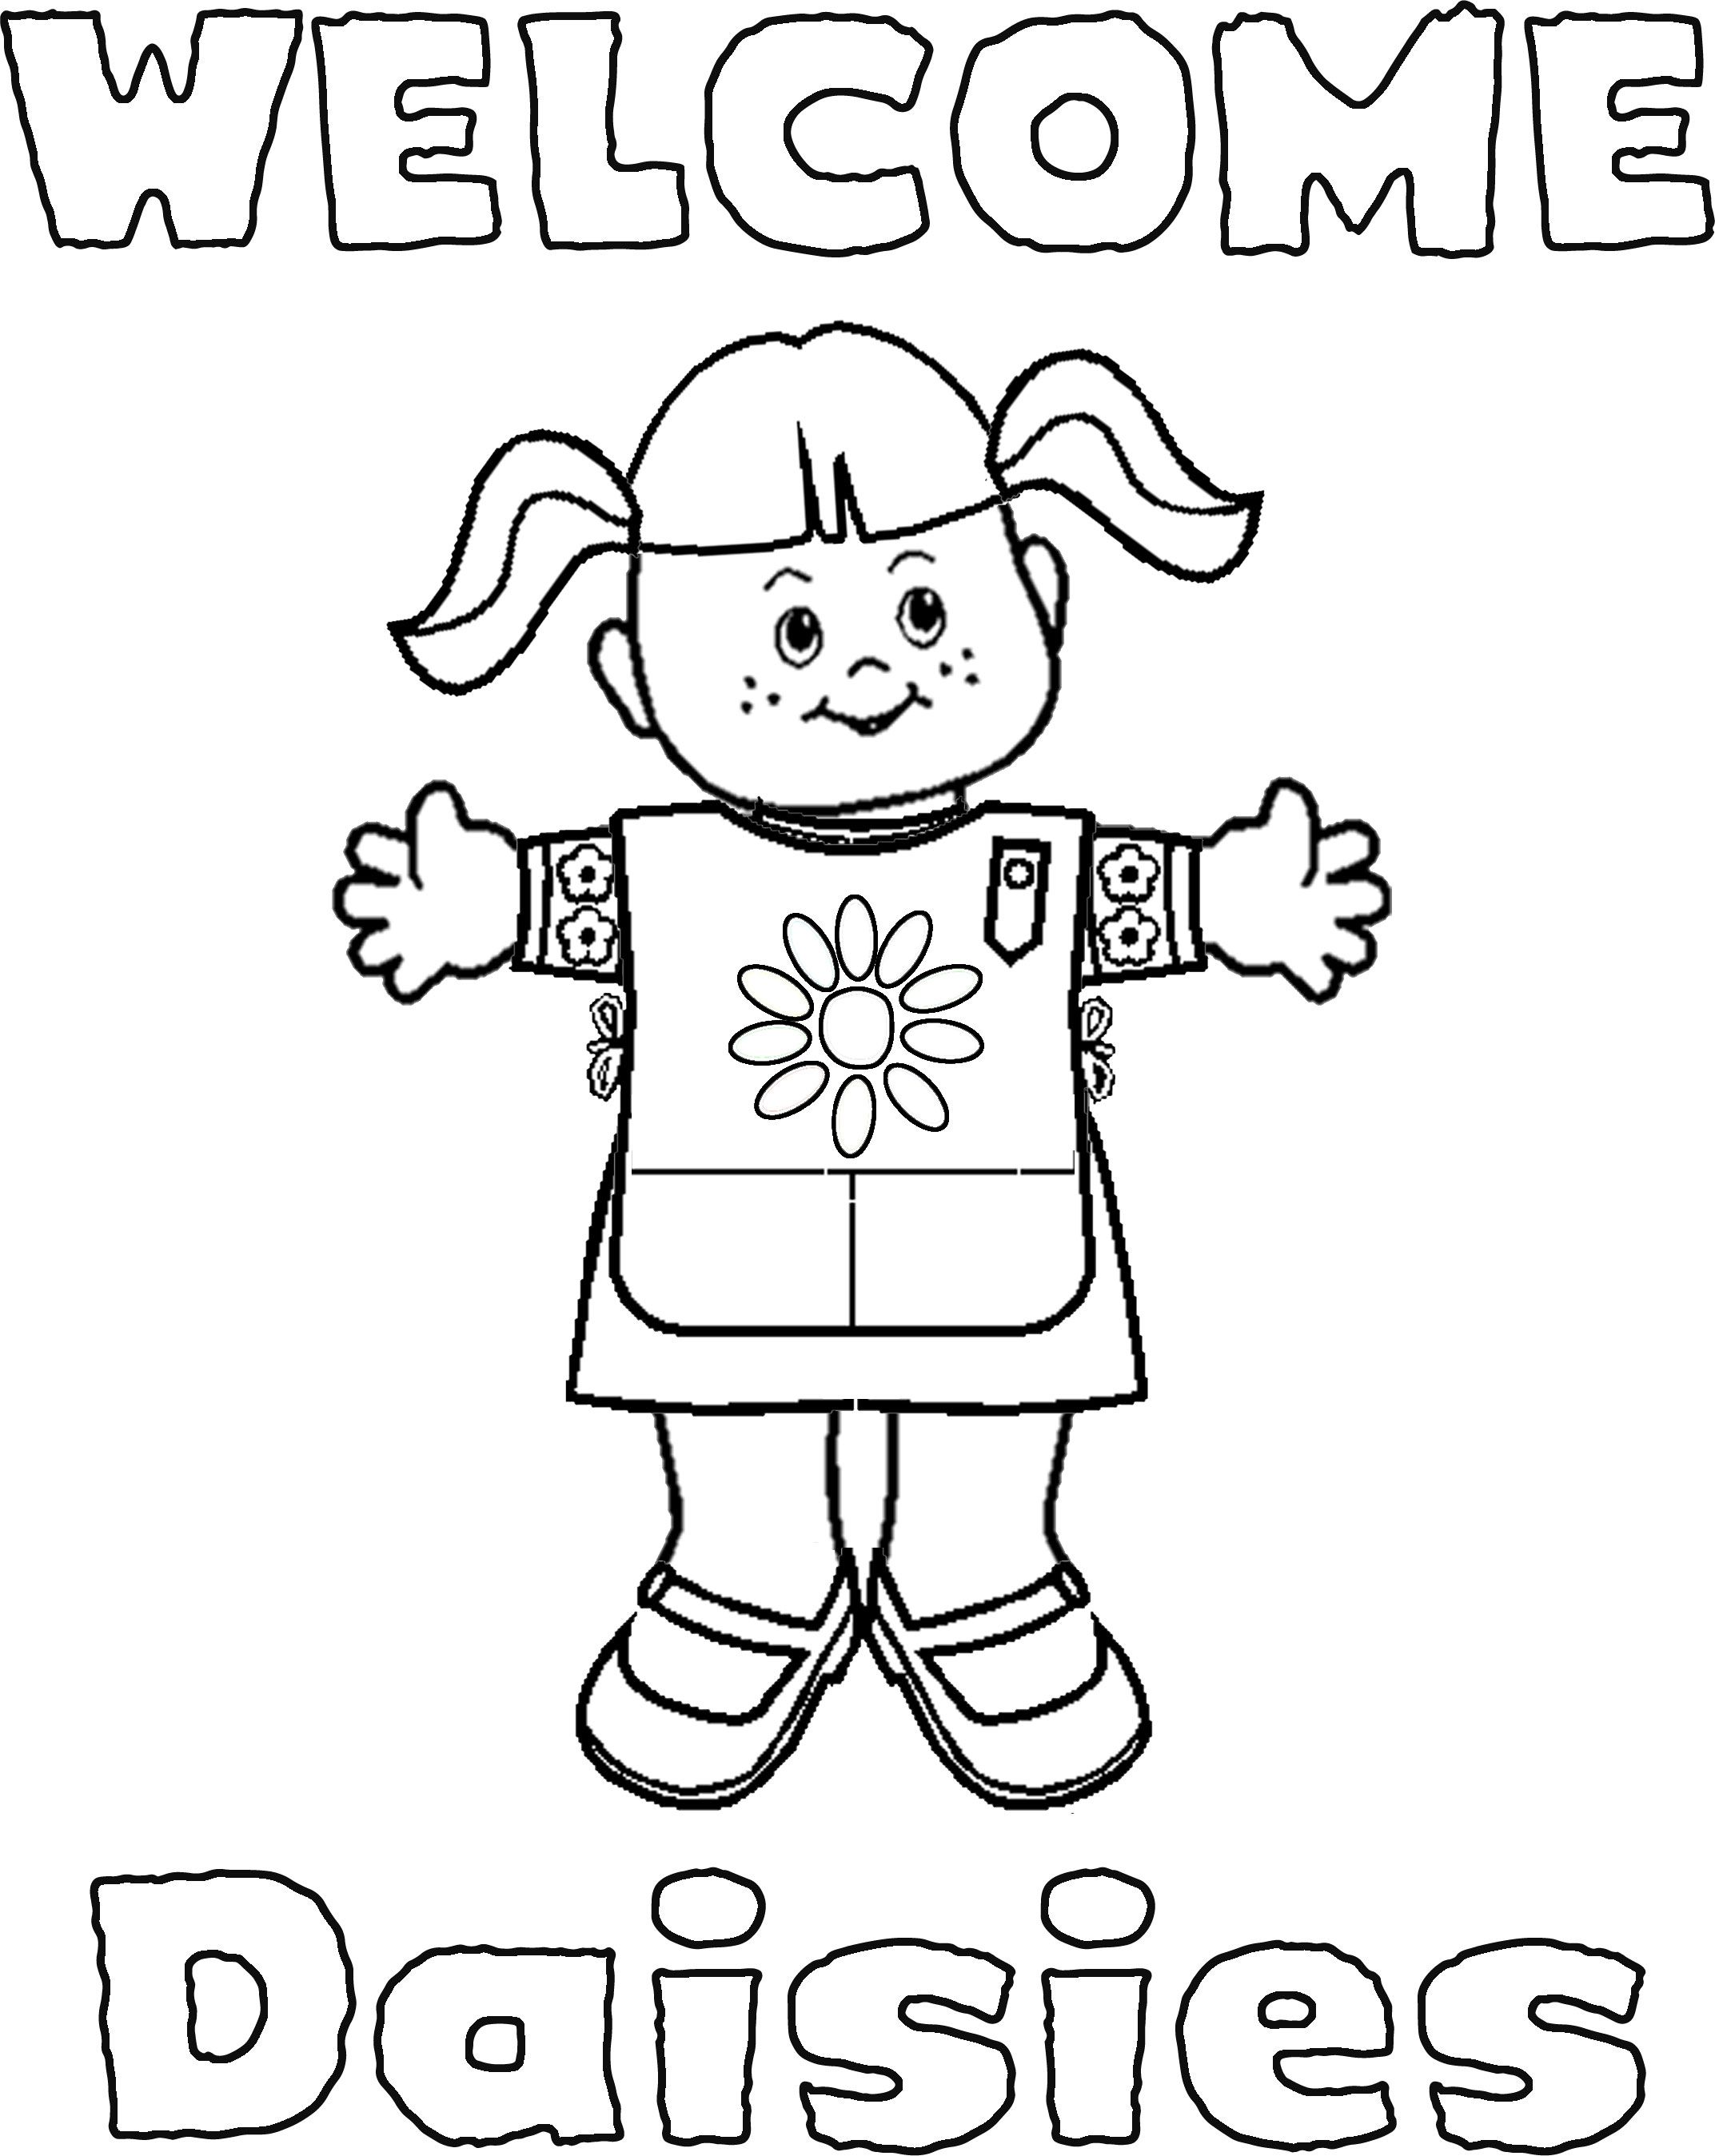 Daisy Girl Scout Coloring Pages Daisy girl scouts Daisy girl